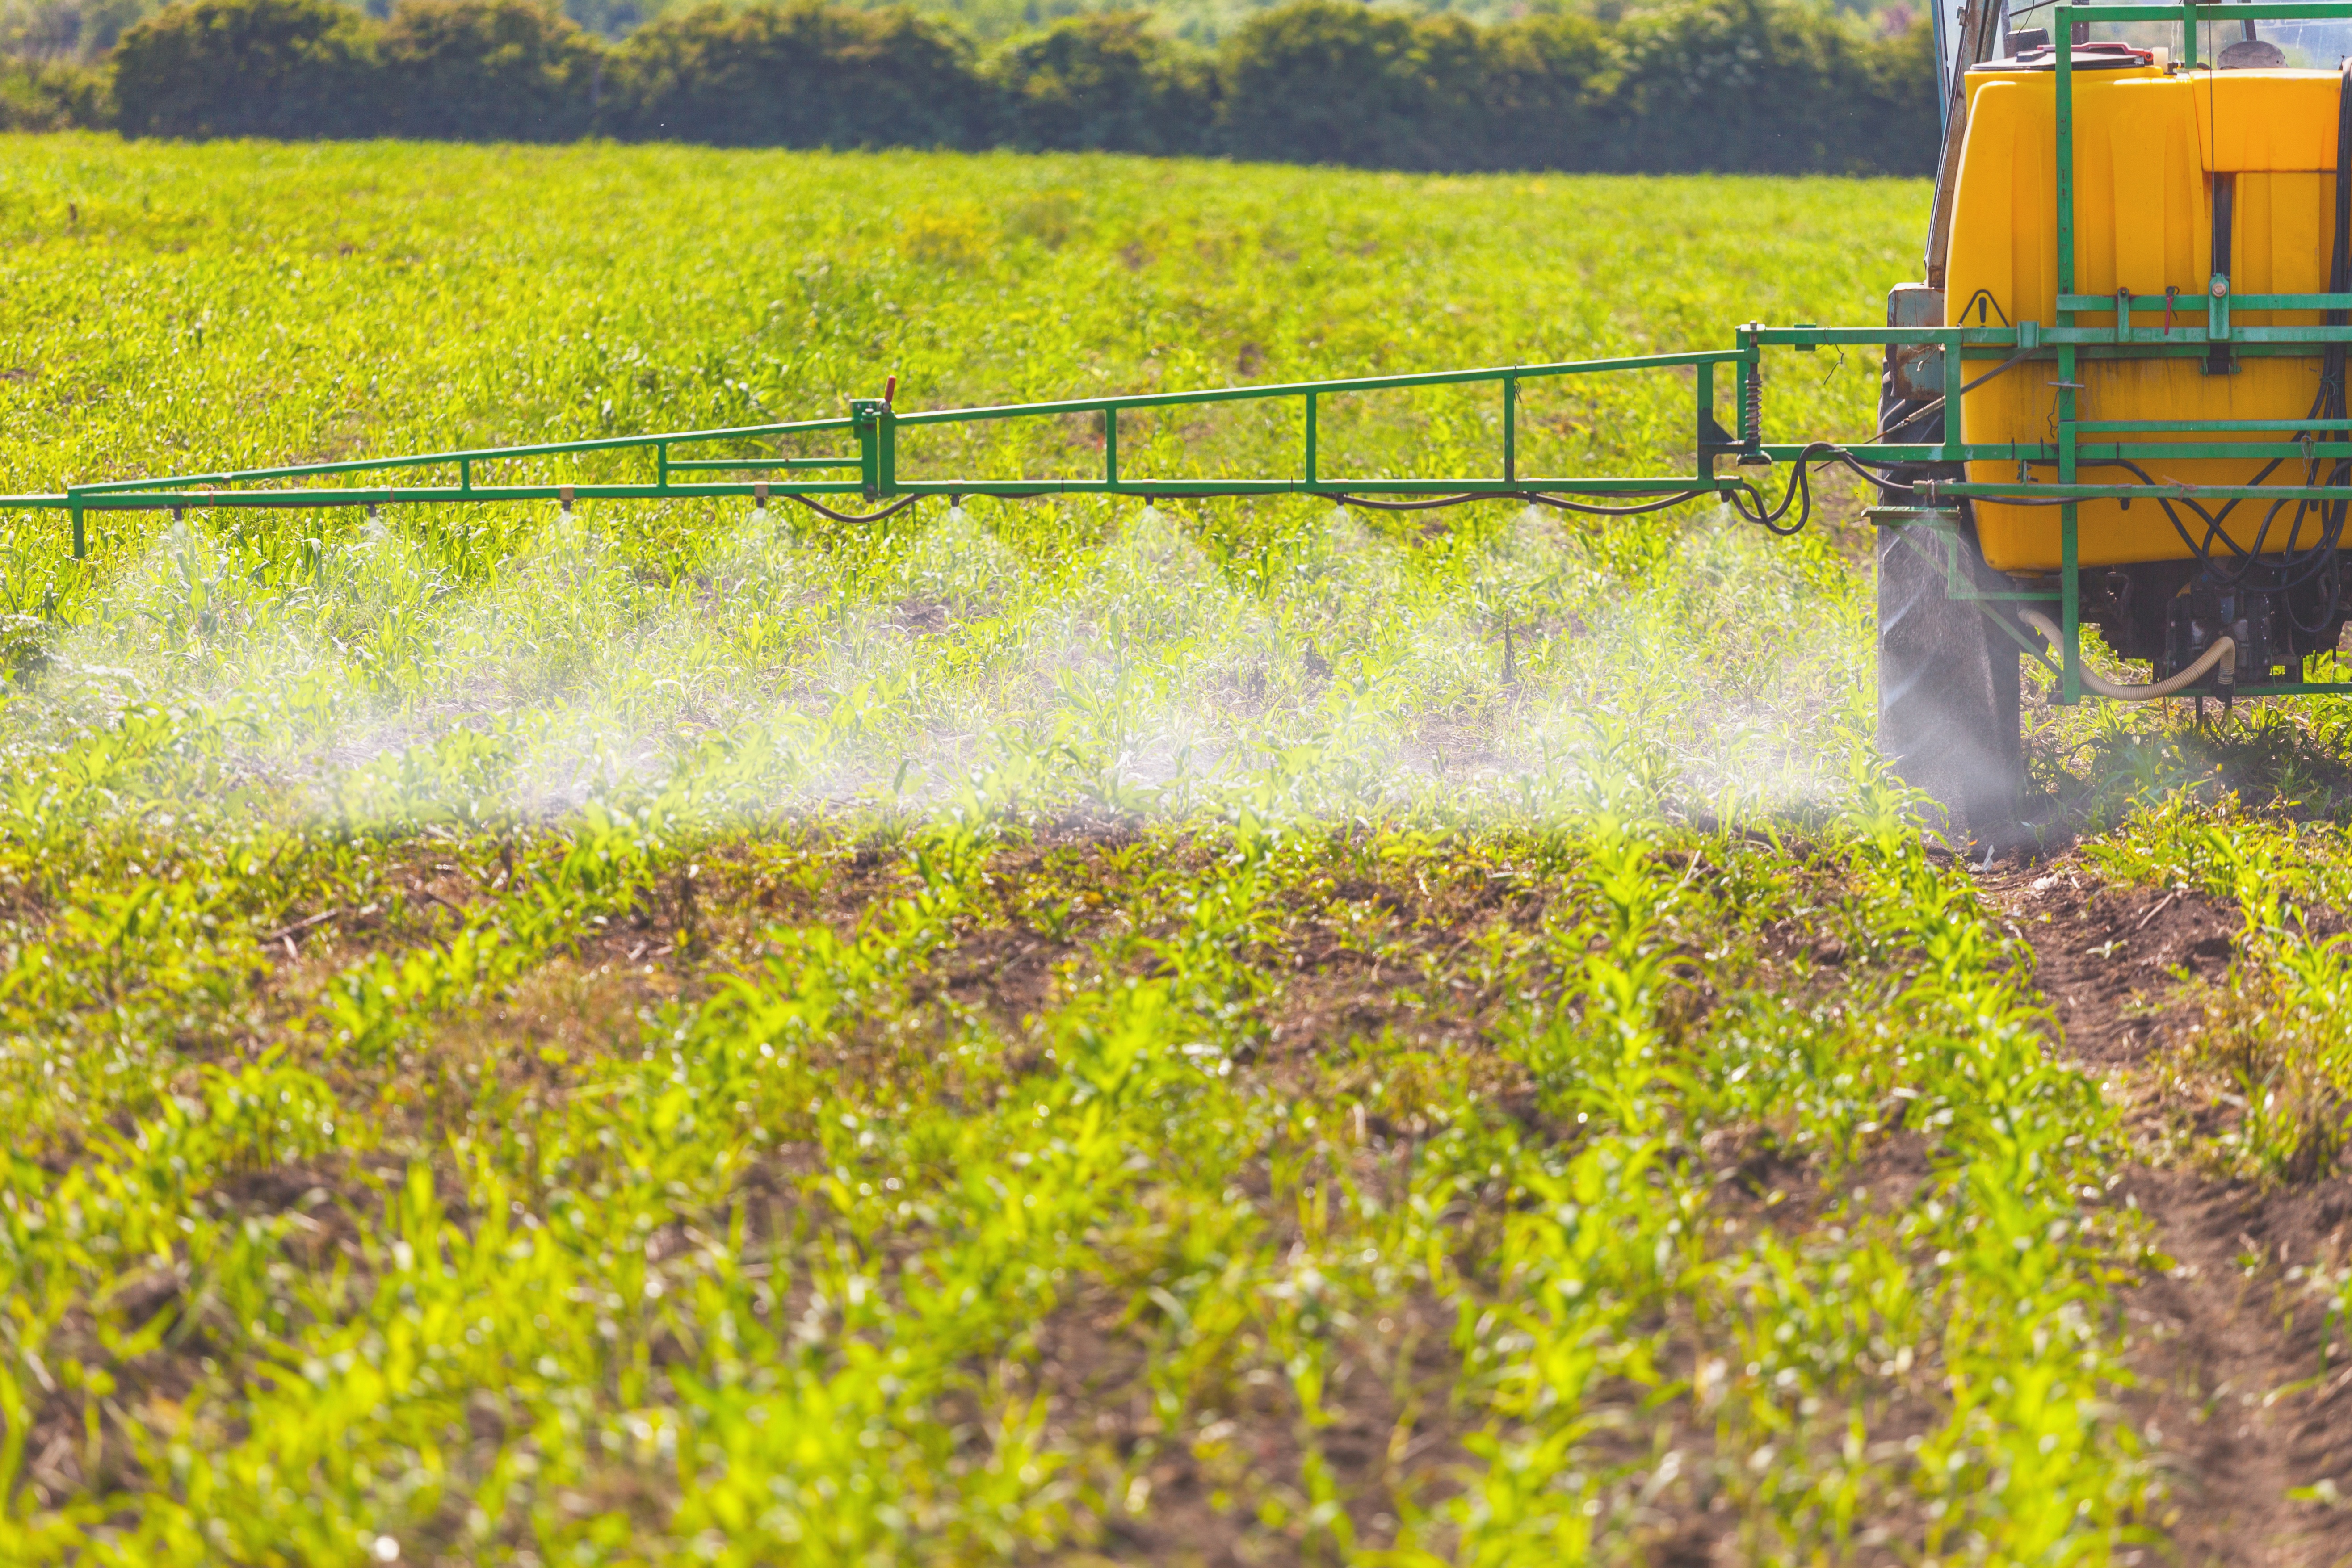 Agrochemical-stock-photo.jpeg